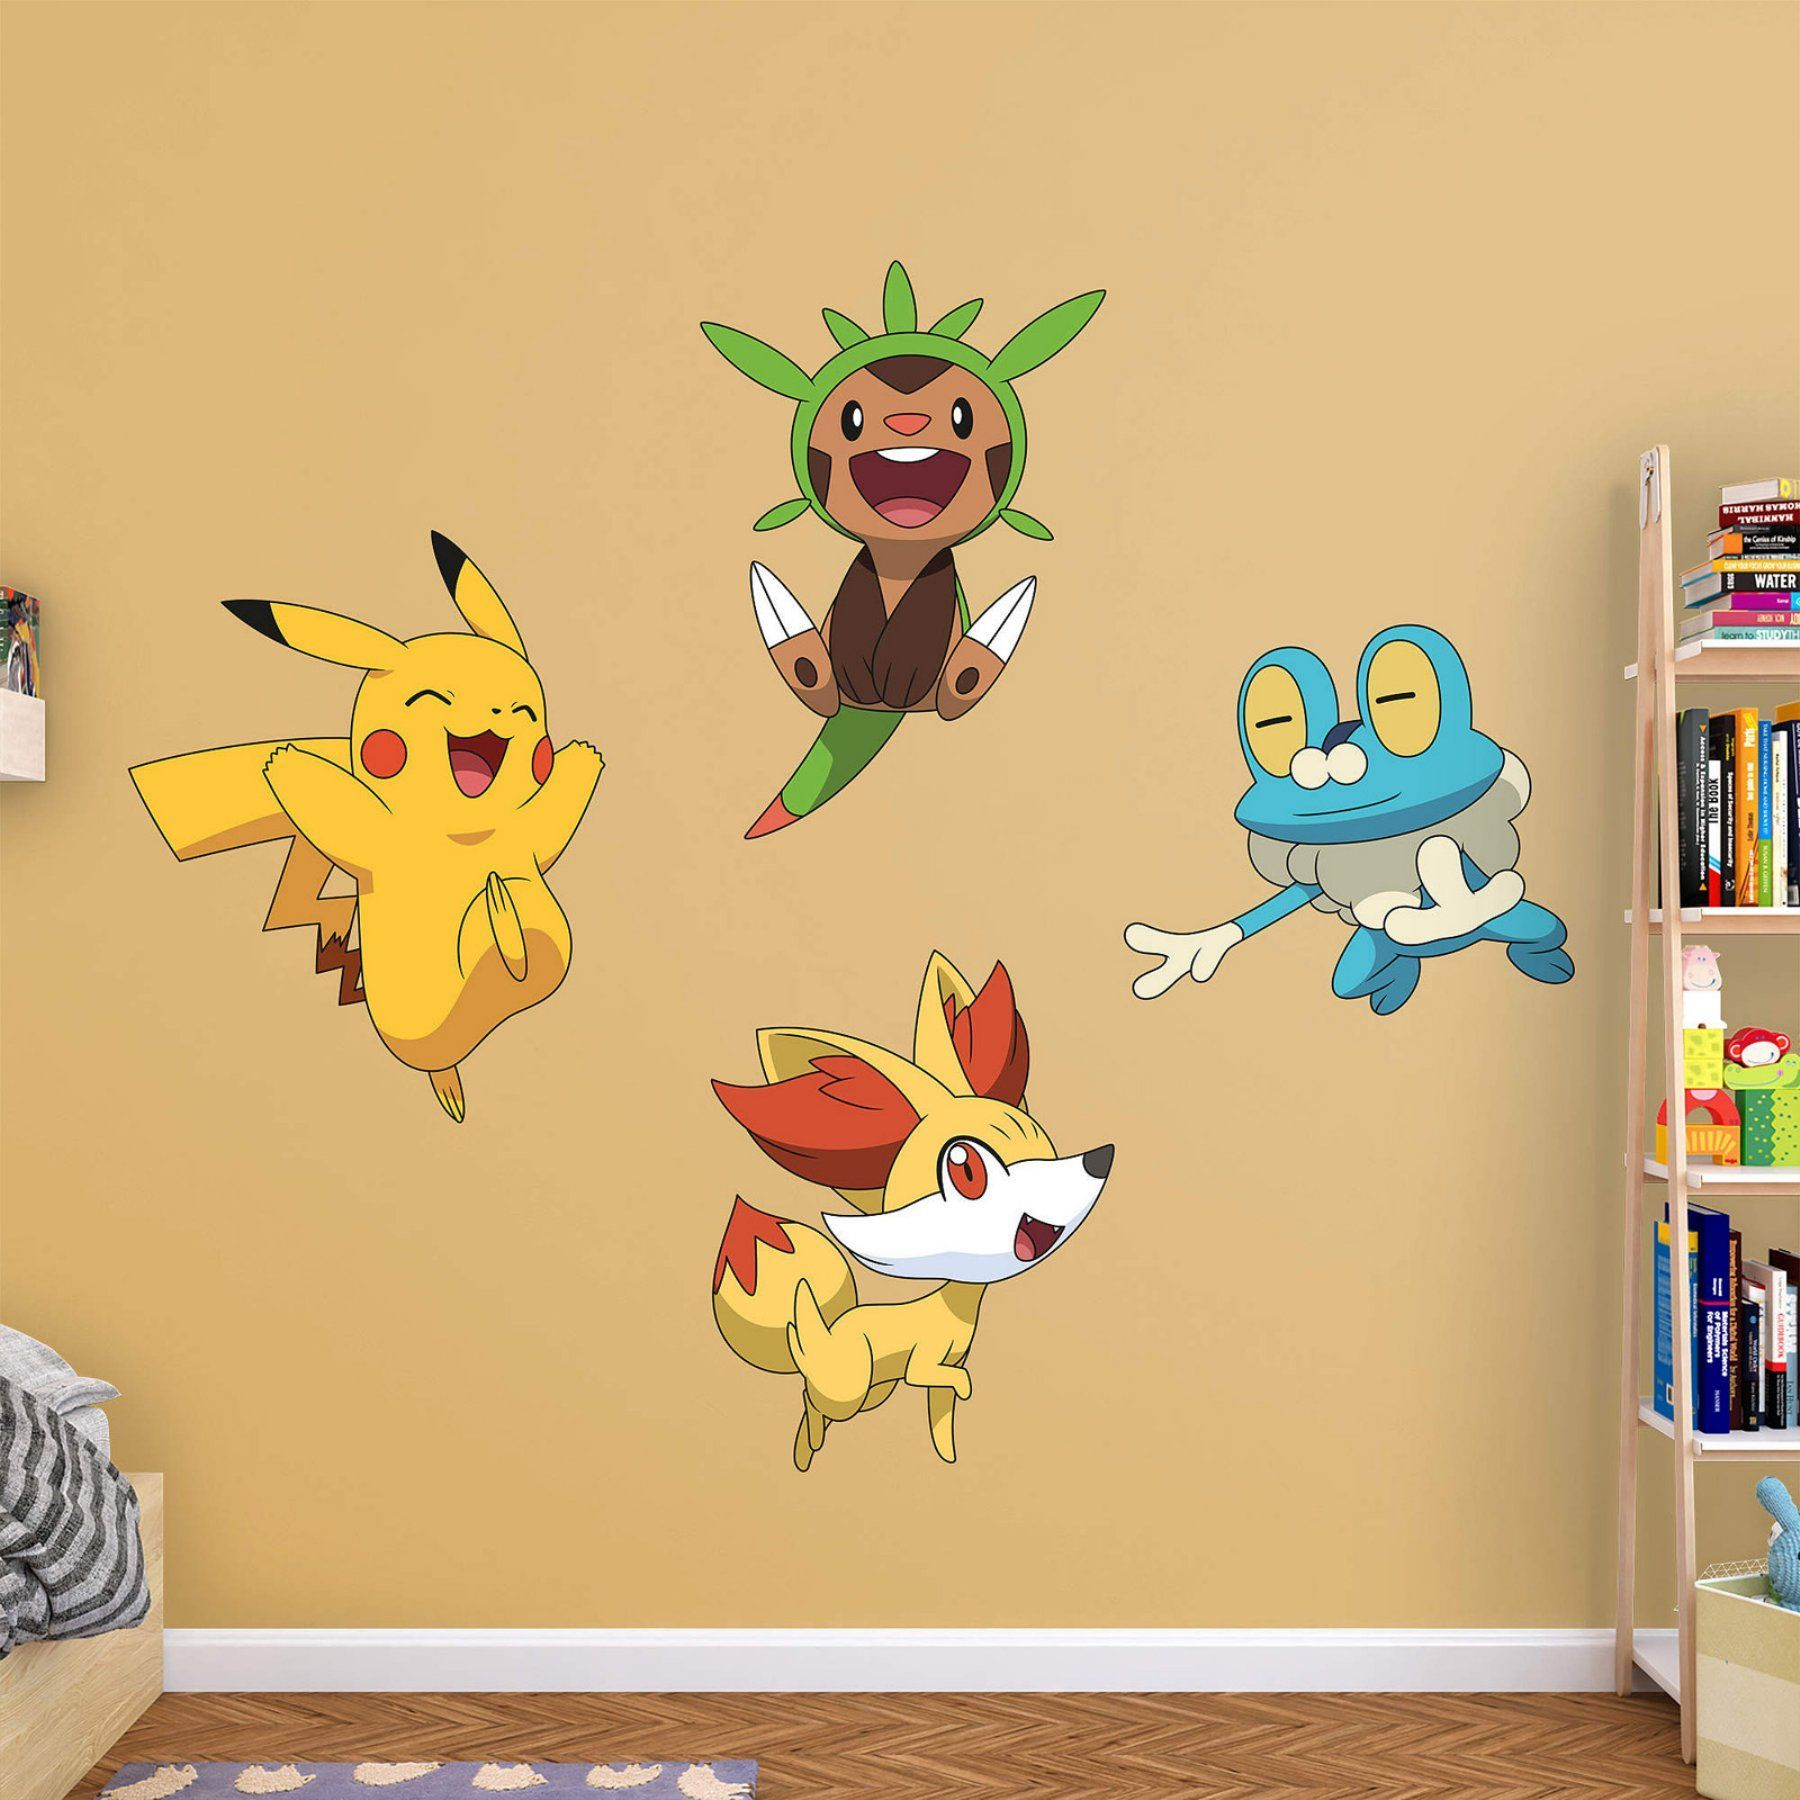 Colorful Fathead Wall Art Model - Art & Wall Decor - hecatalog.info